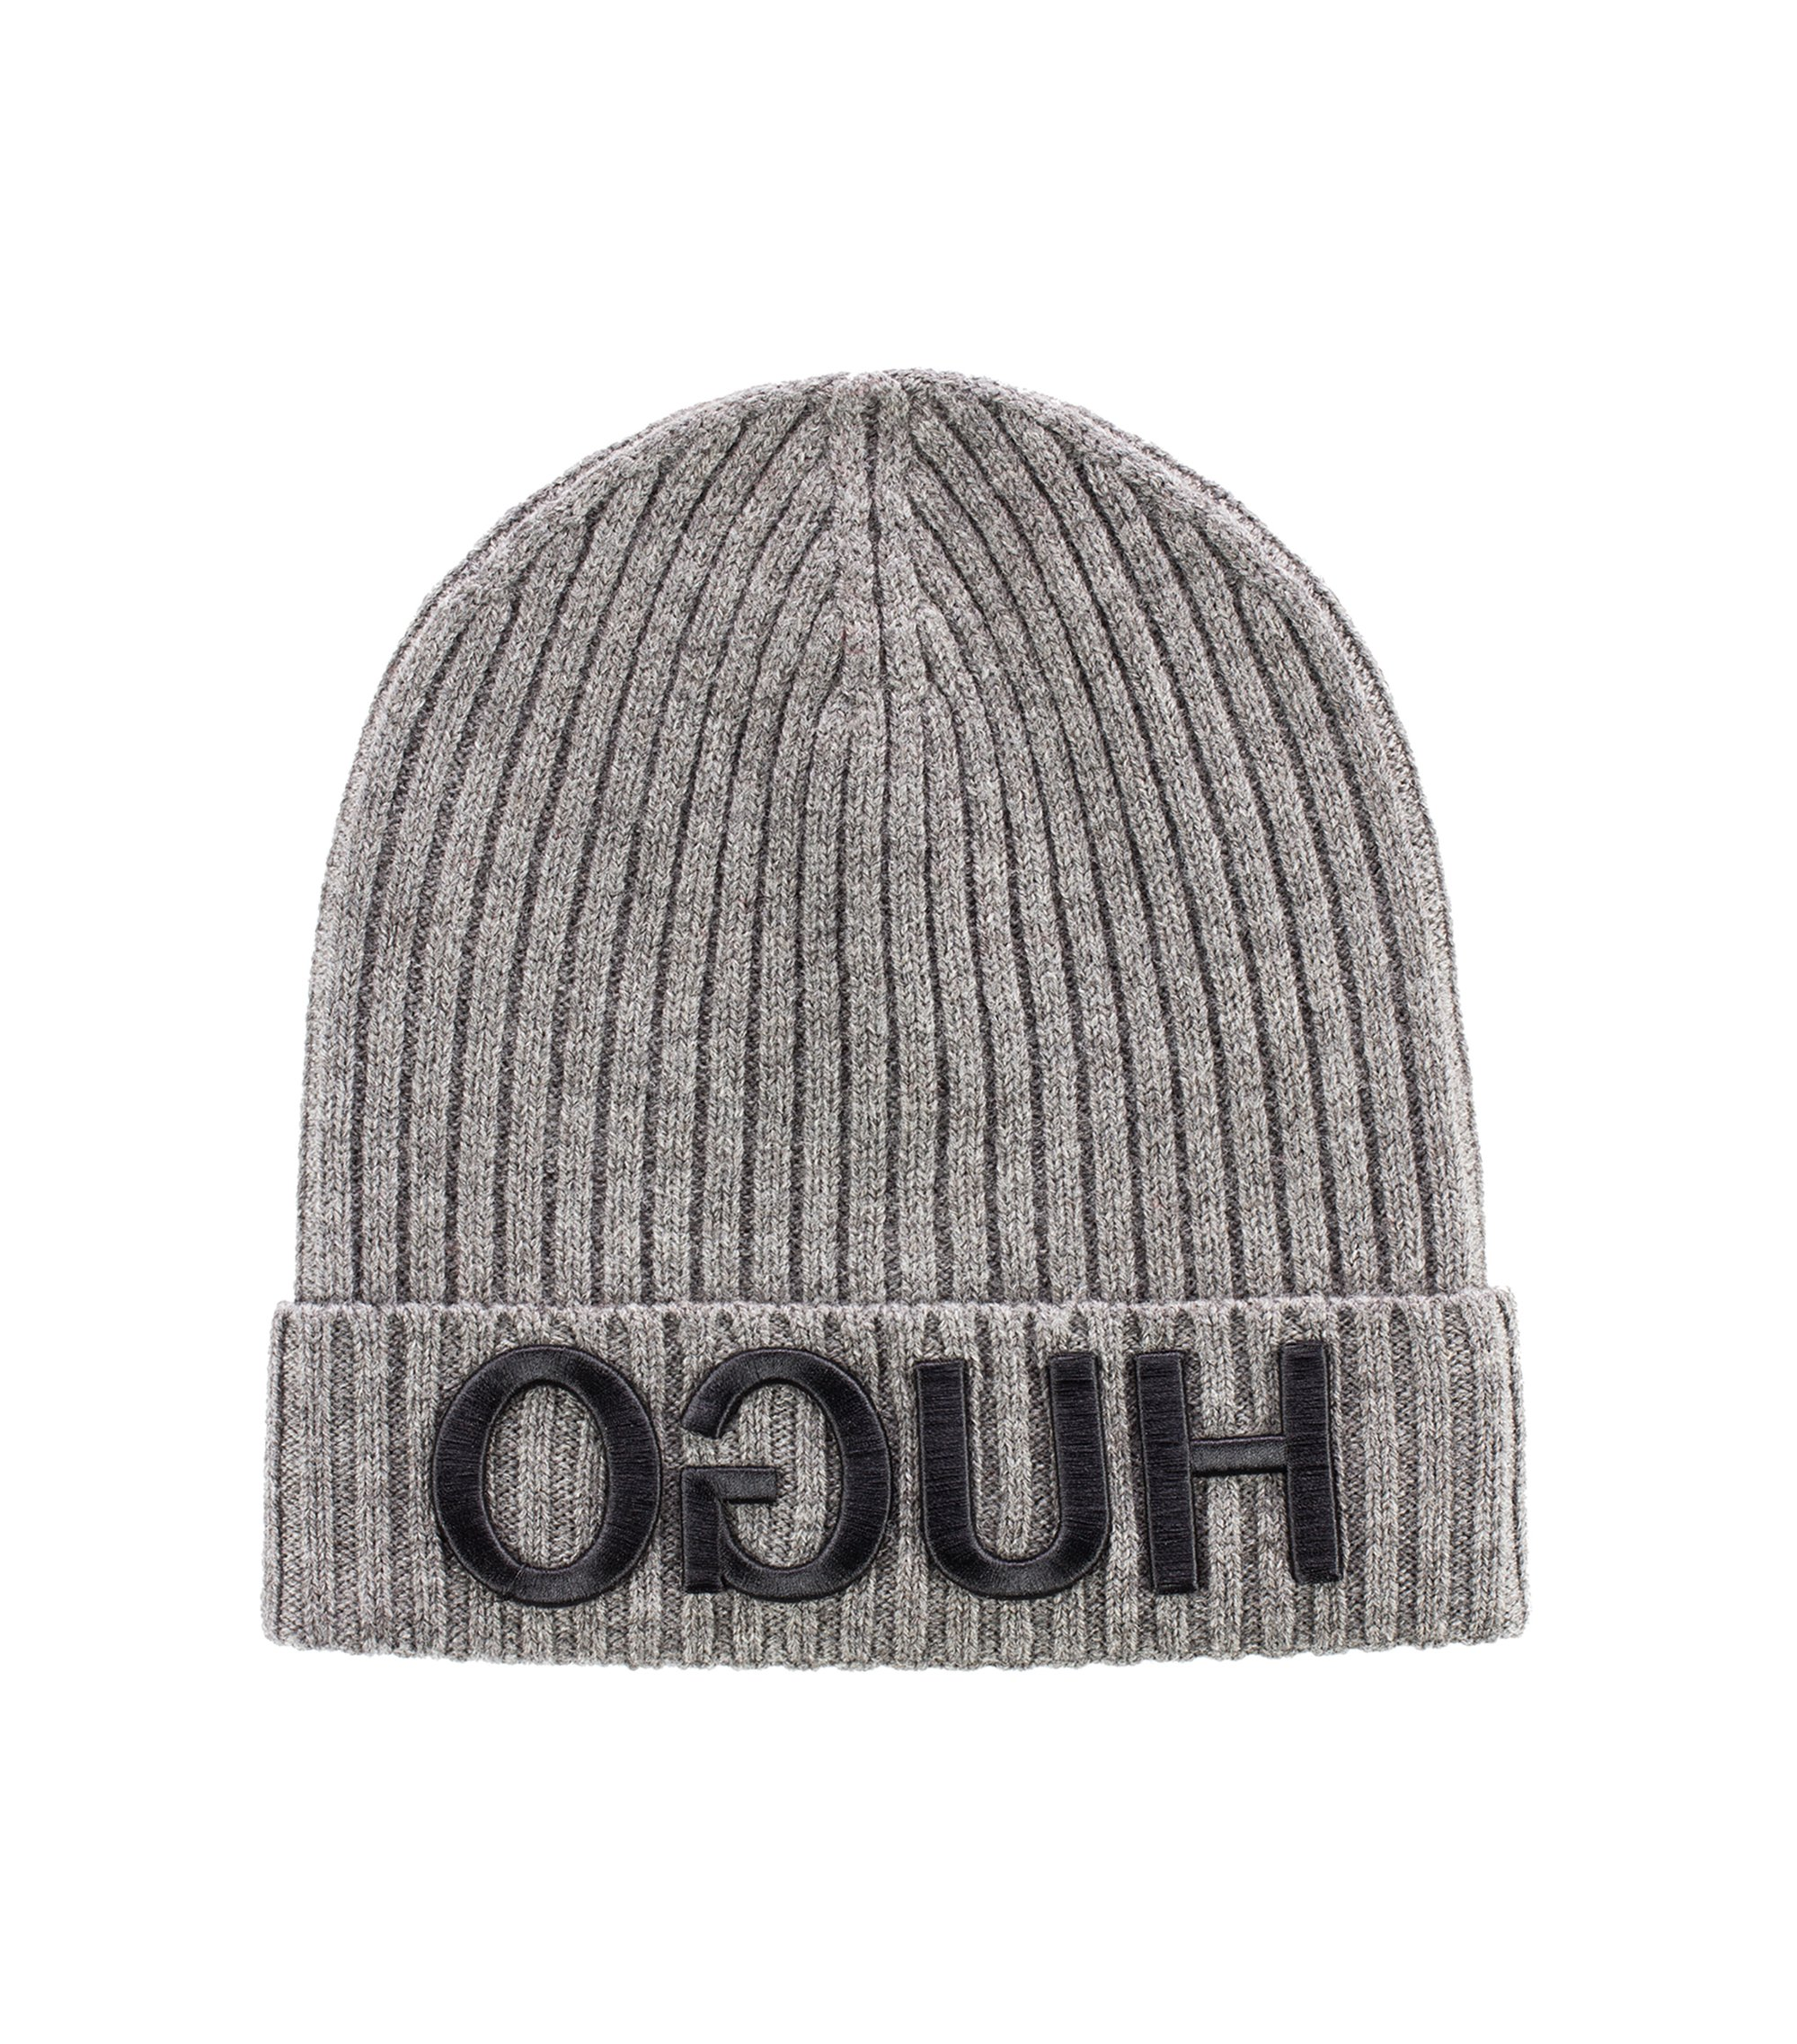 Wool beanie hat with 3D reverse-logo embroidery, Grey